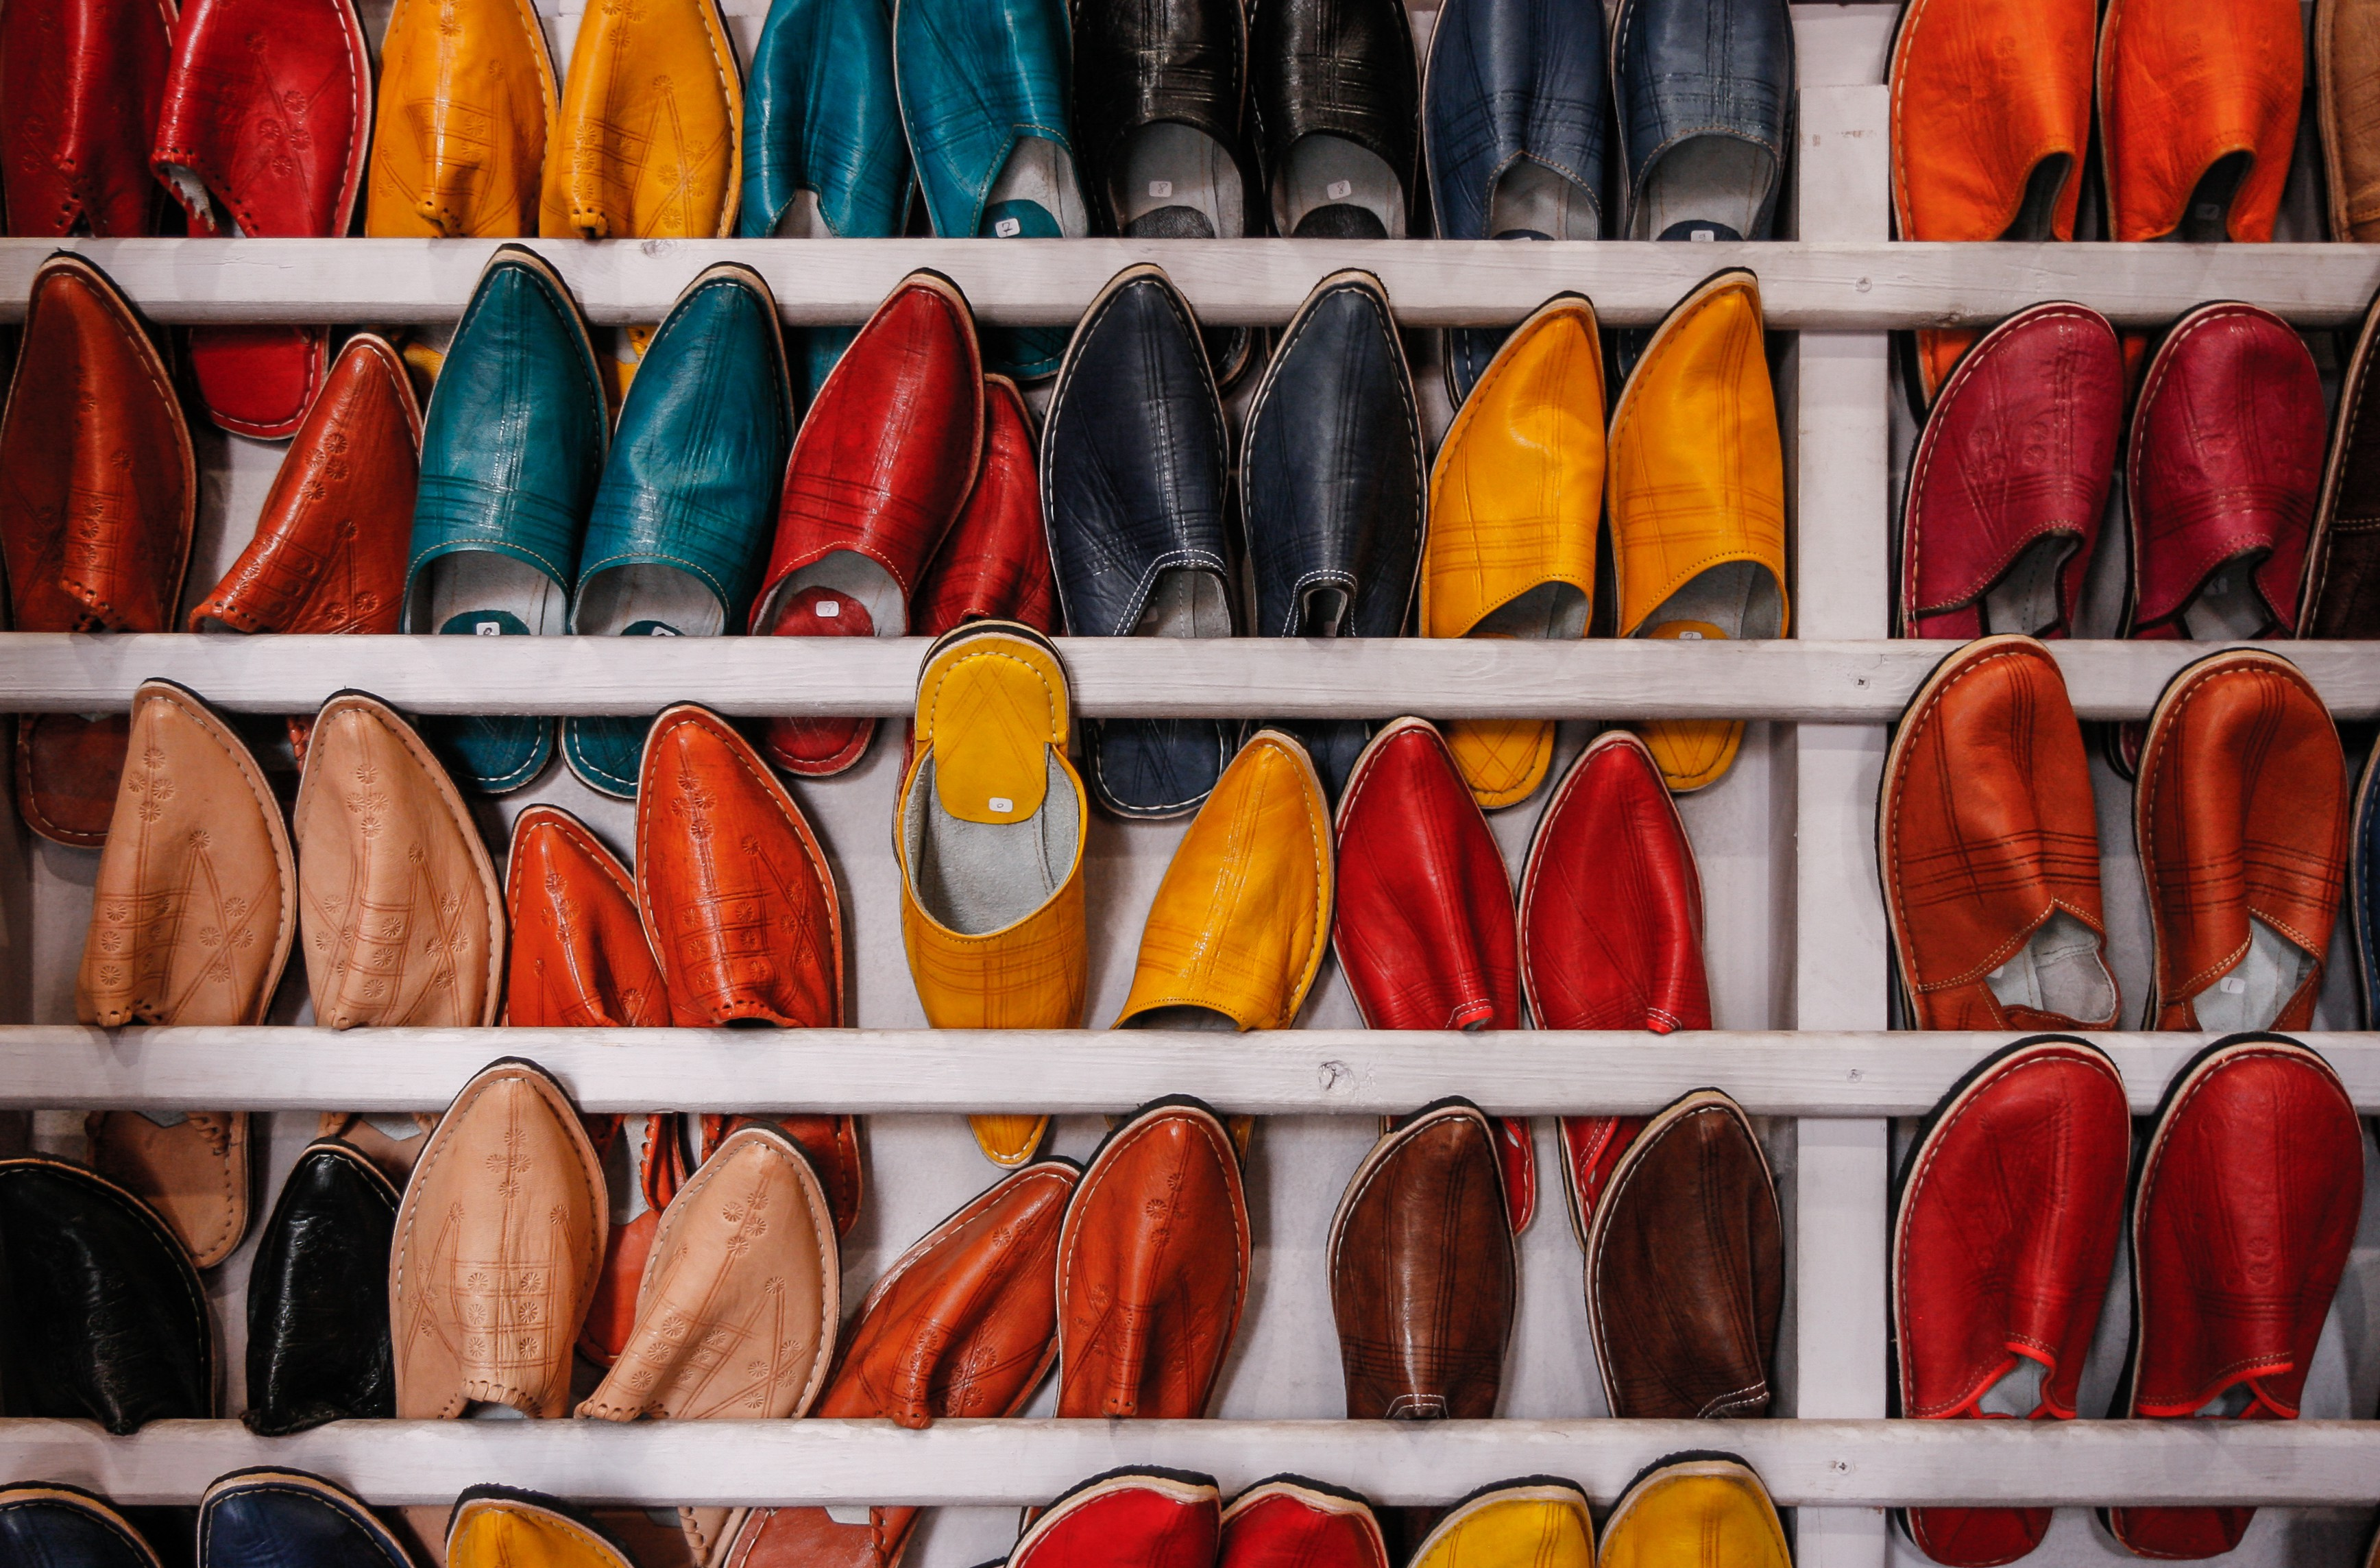 An inventory of shoes